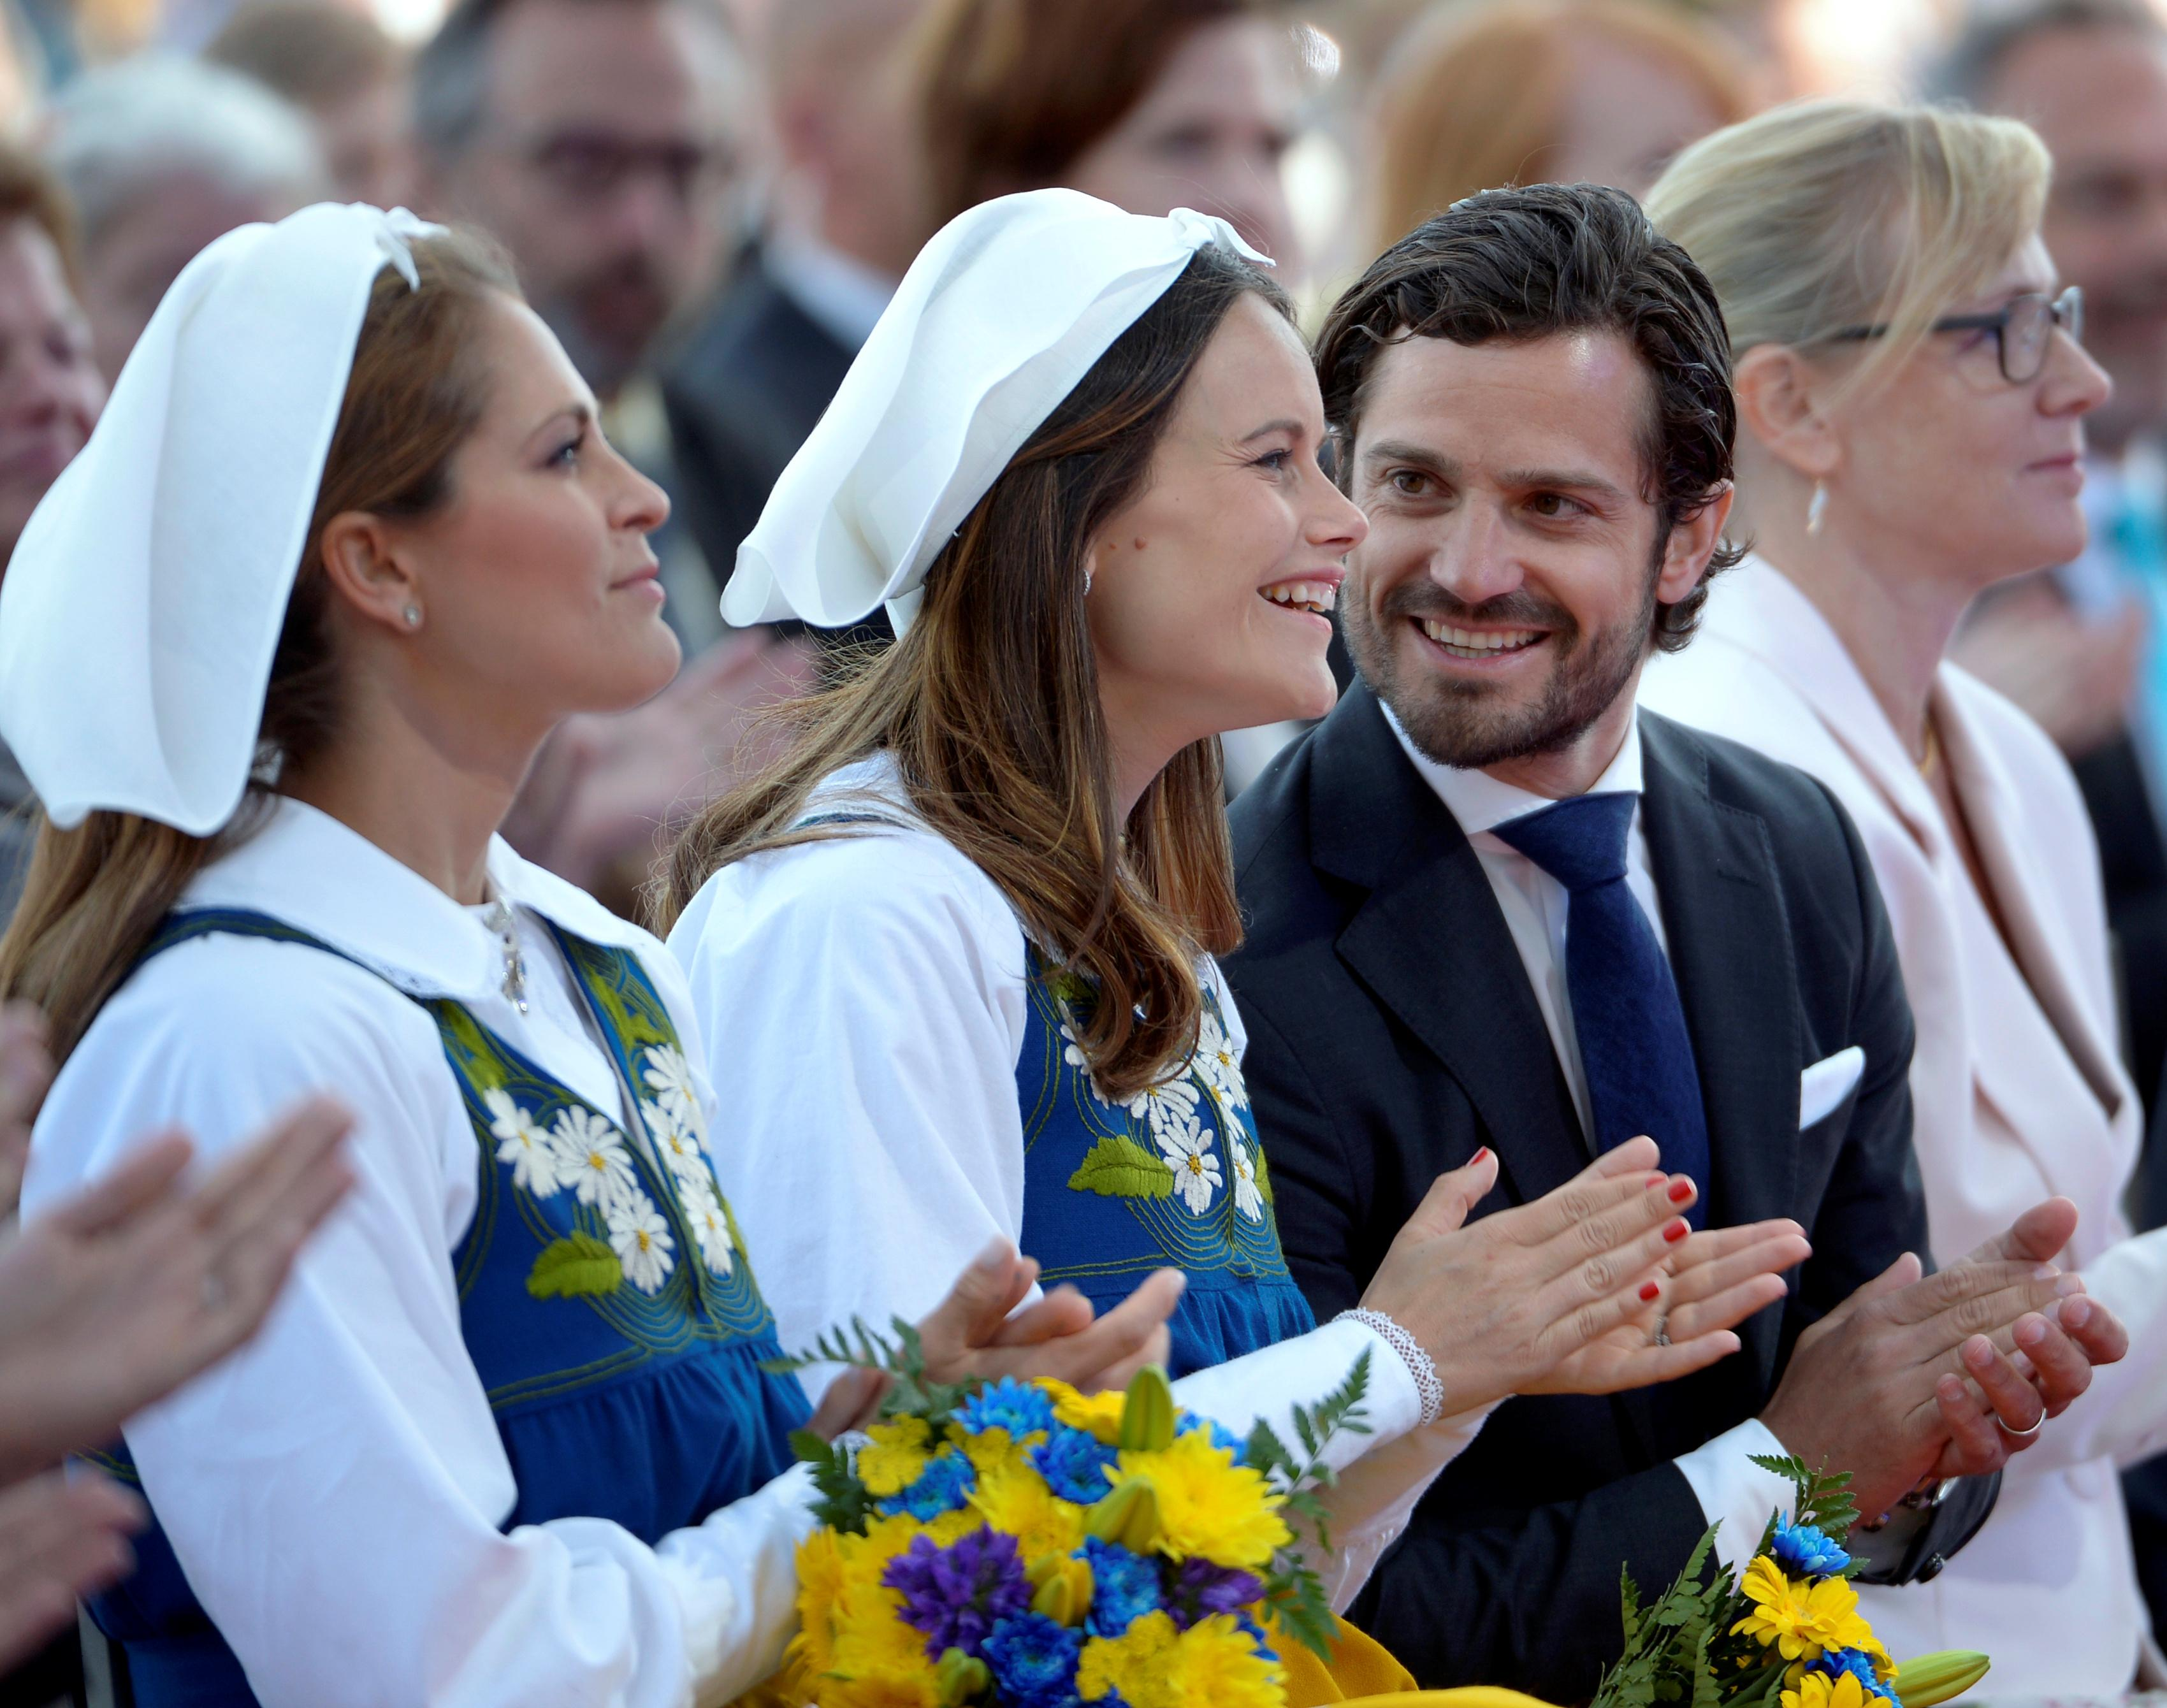 Princess Sofia wears the traditional Swedish headscarf for the first time